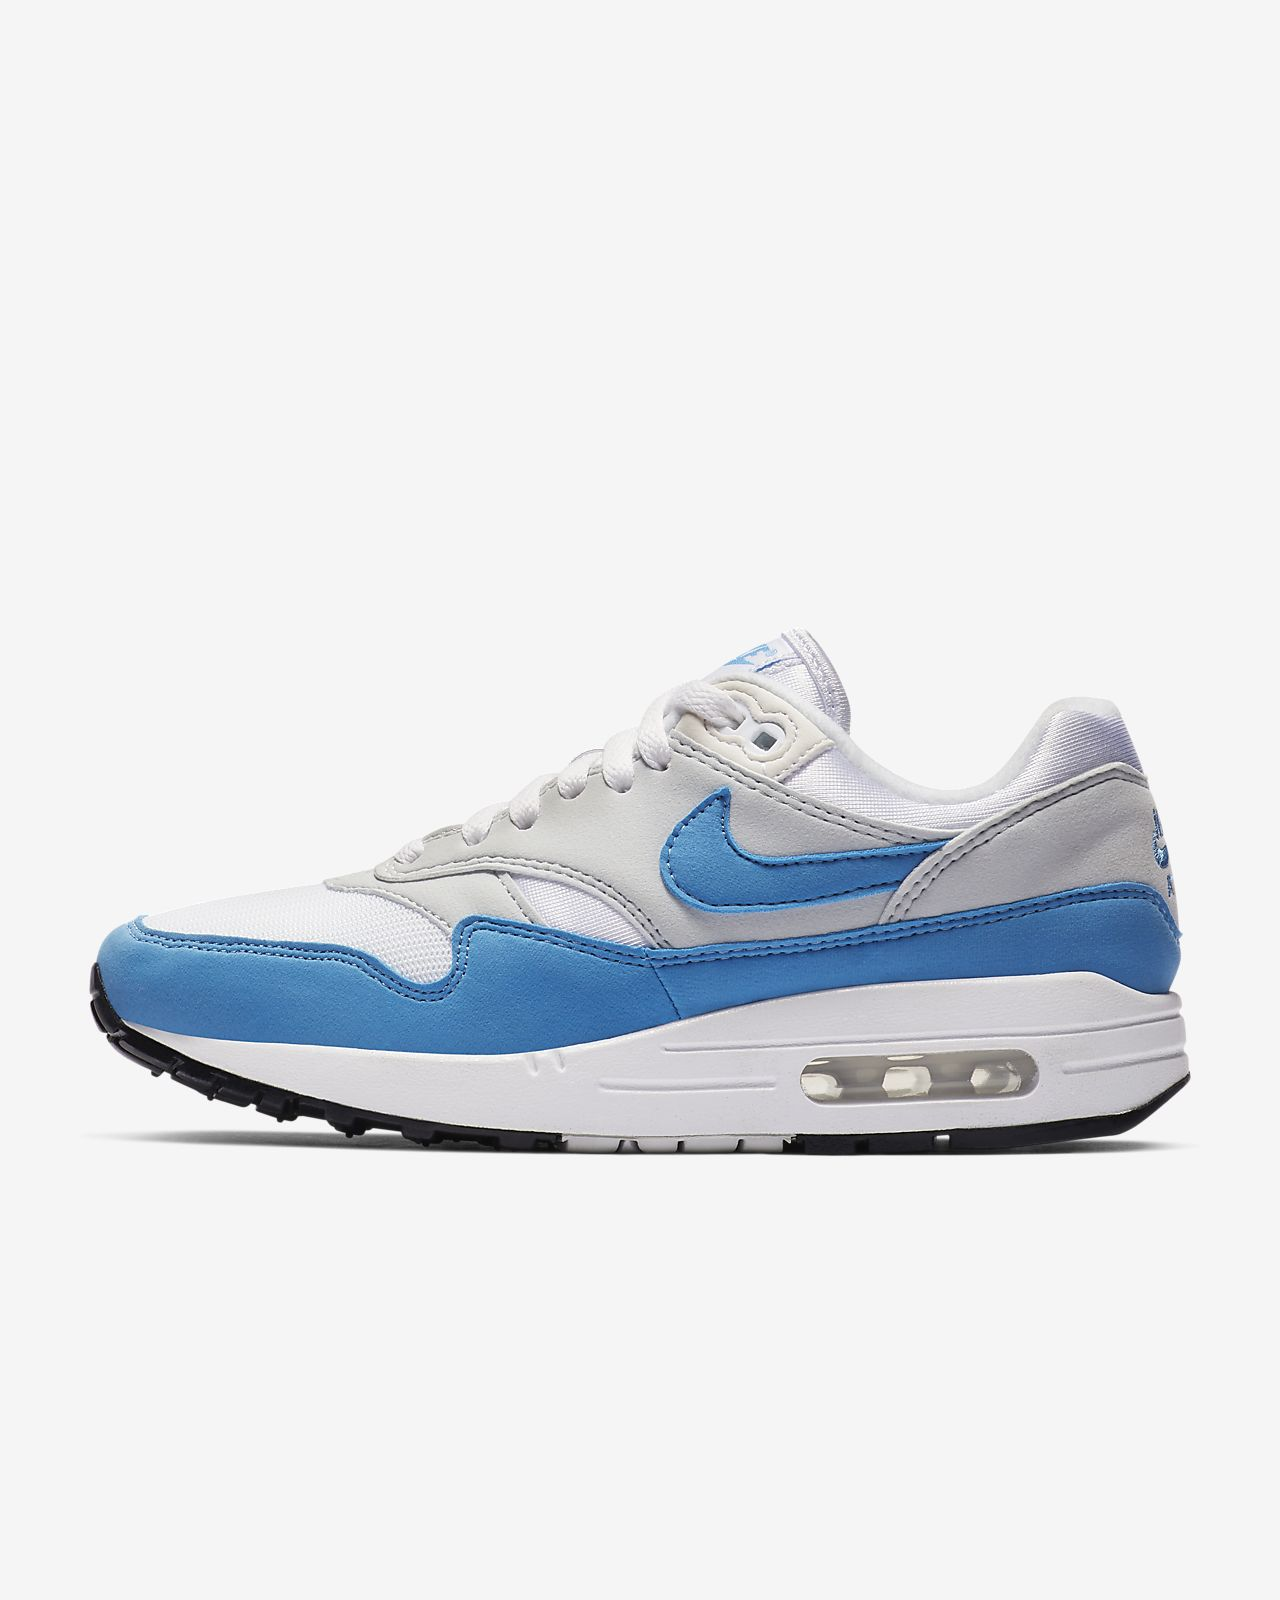 8ac622f57d2 Nike Air Max 1 Essential Women s Shoe. Nike.com GB